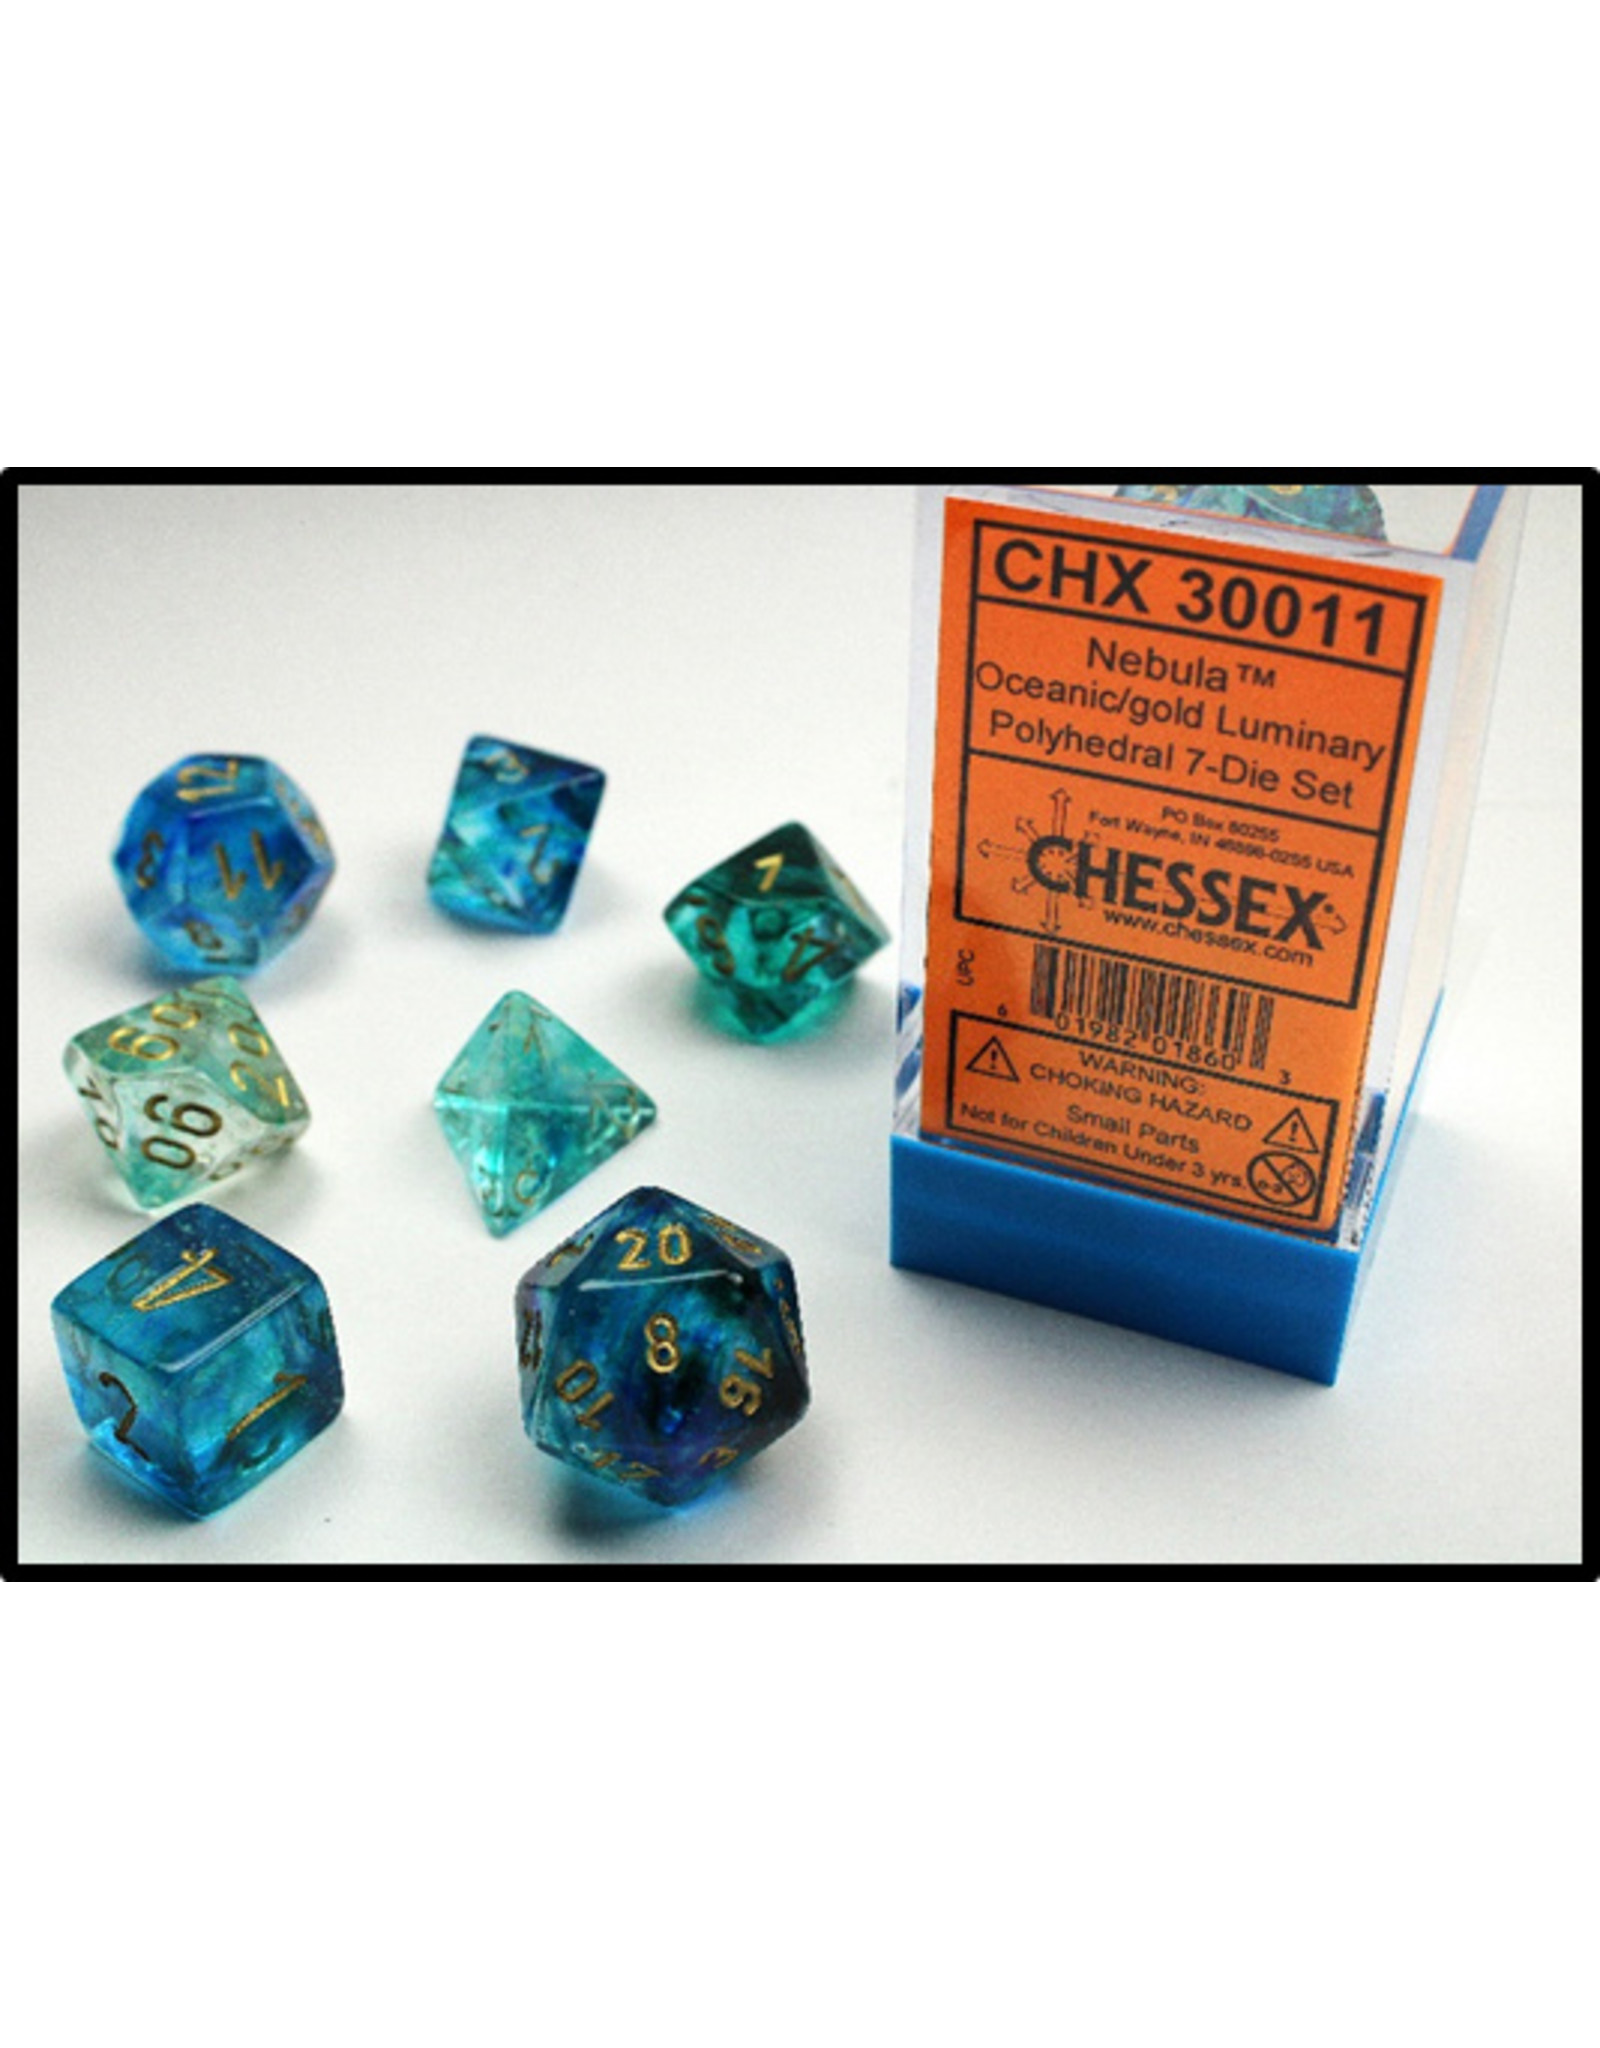 Chessex 7-Set Polyhedral Cube LD NB Luminary GND Oceanic gd